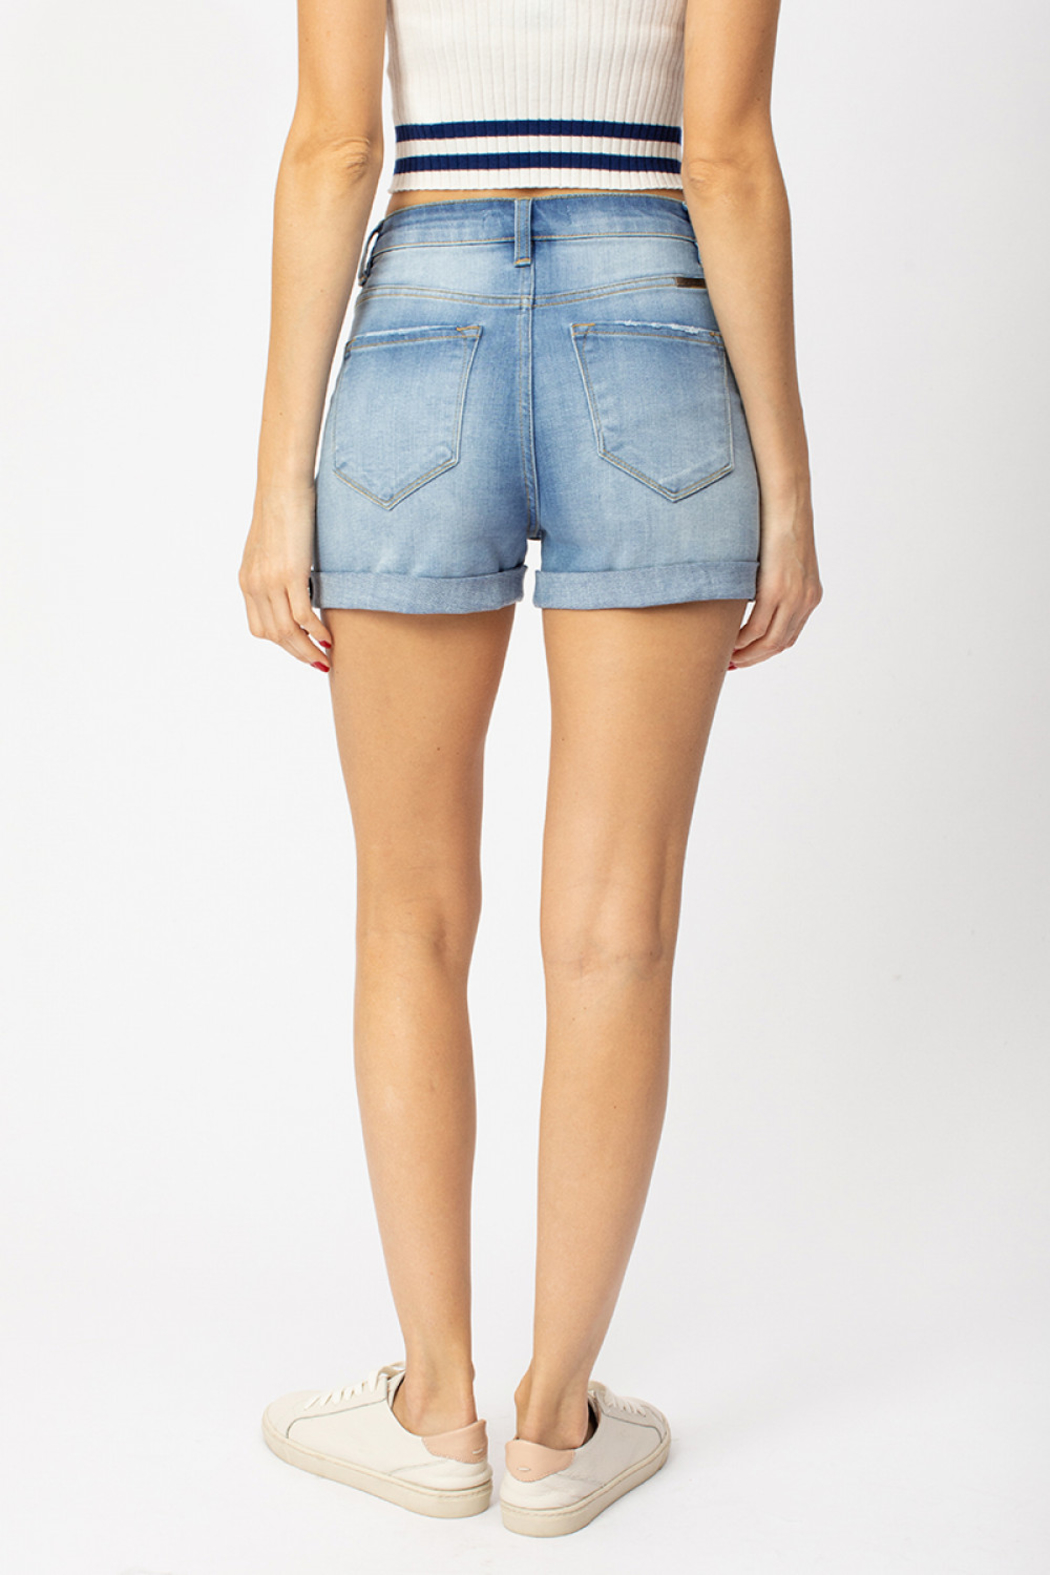 KanCan Hazel Cuffed High Rise shorts - Front Full Image